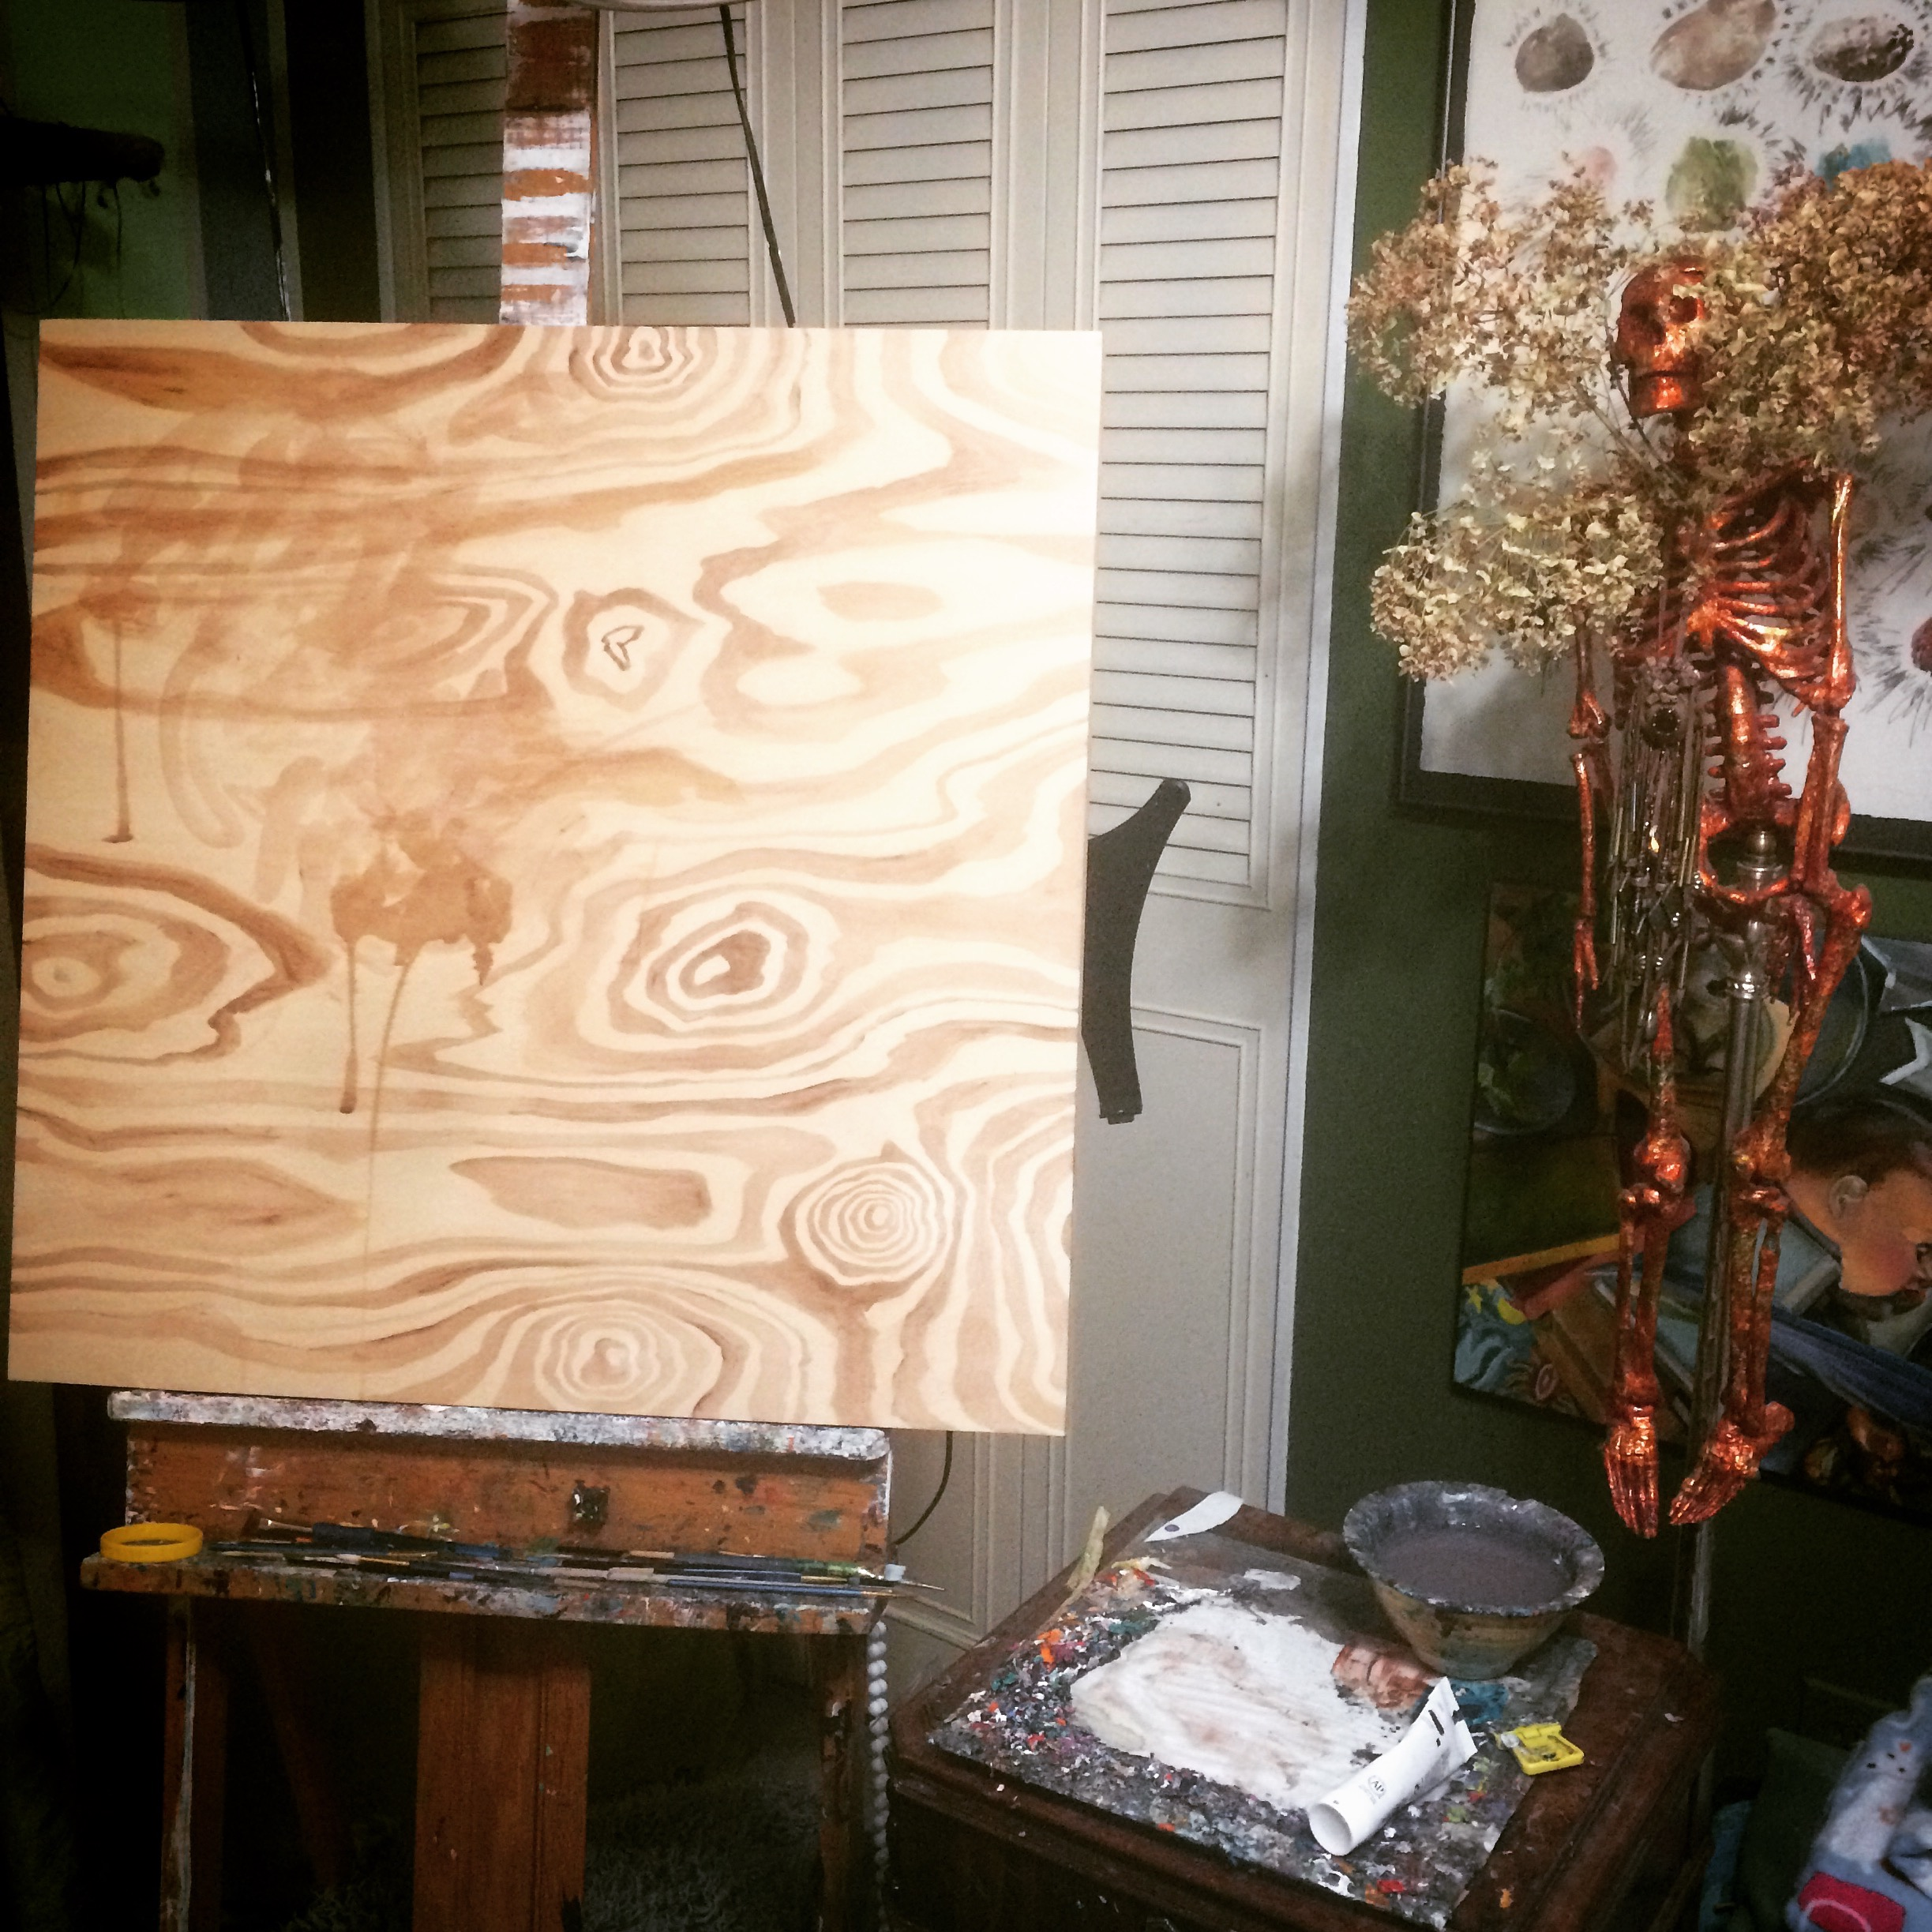 Working with the wood grain to find a composition.